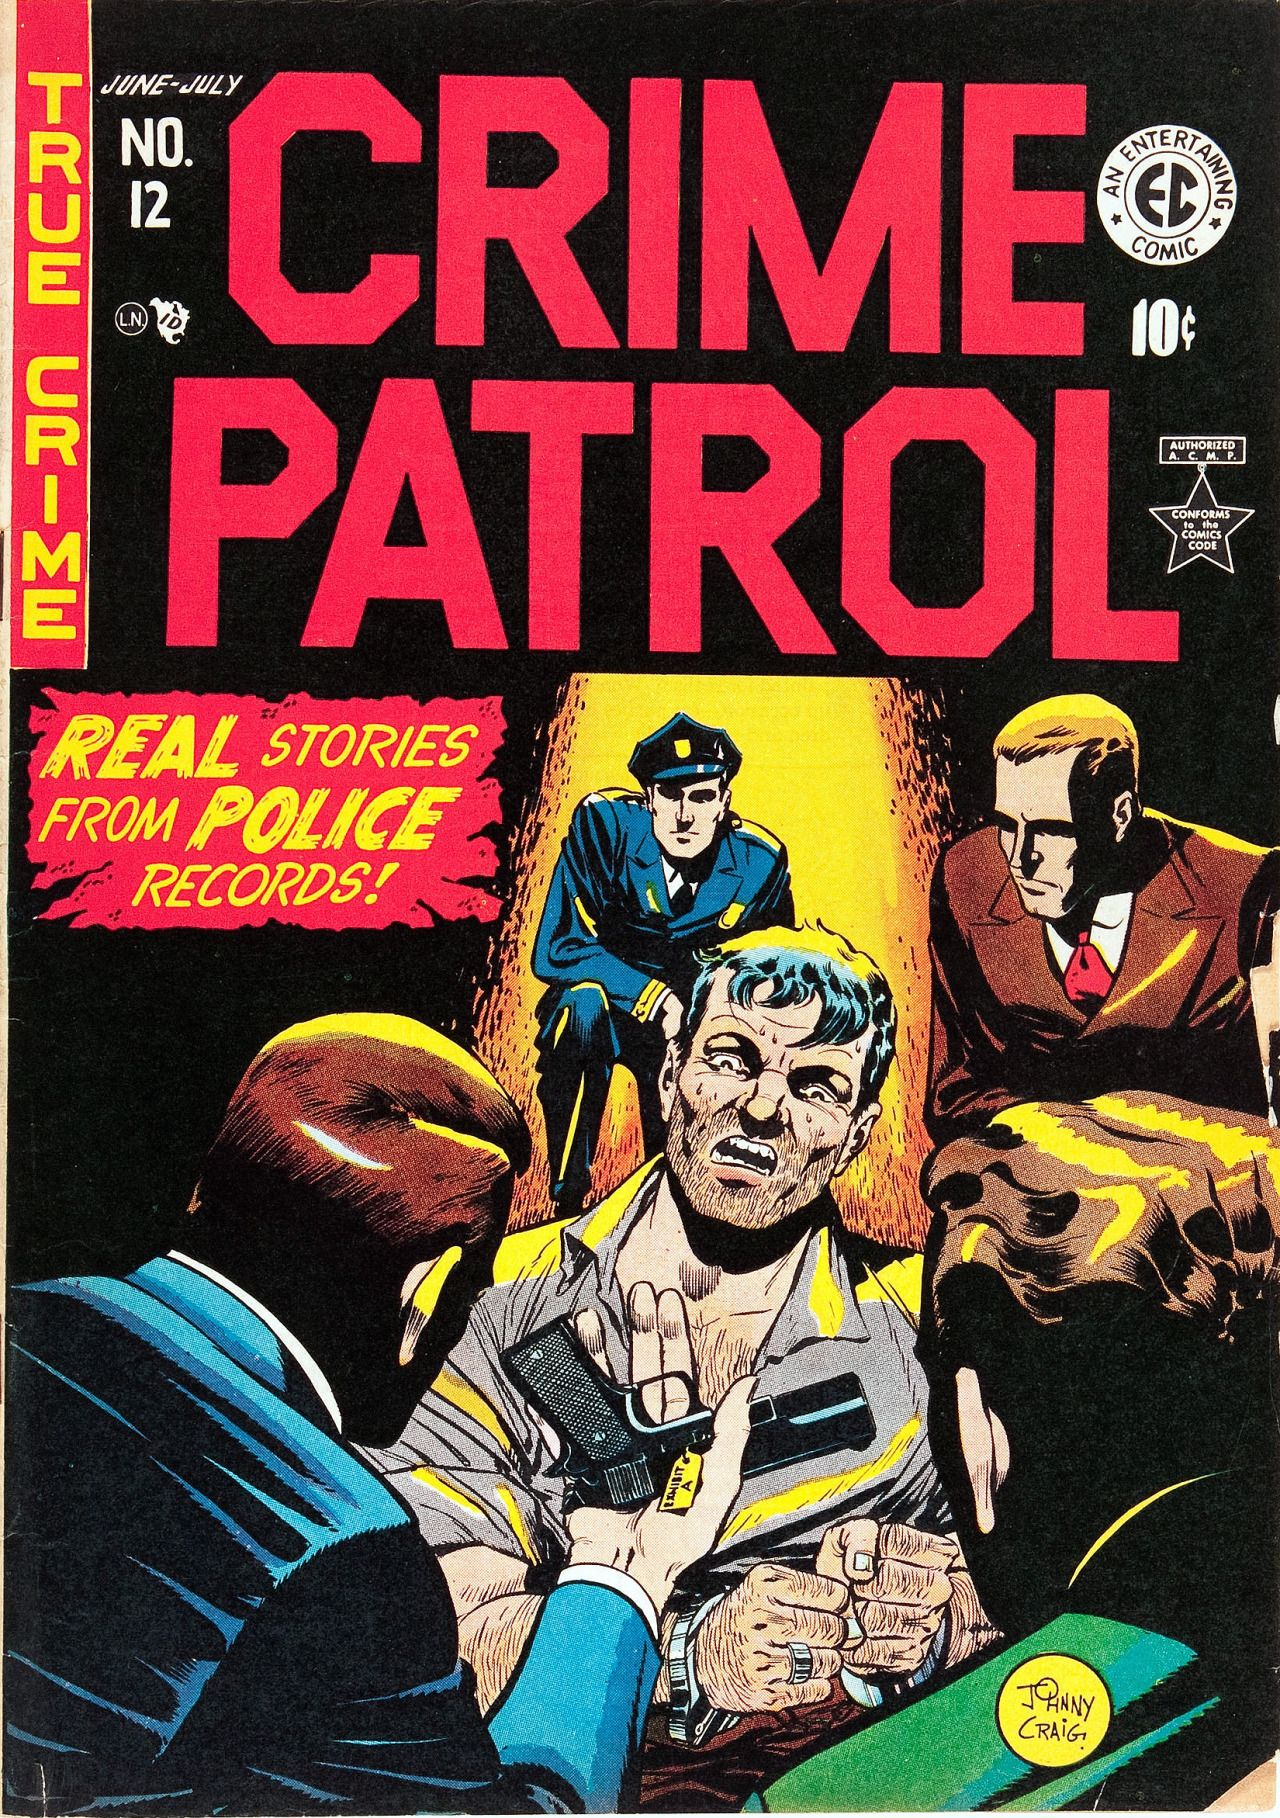 Original and final cover art by Johnny Craig from Crime Patrol #12, published by EC Comics, June 1949.